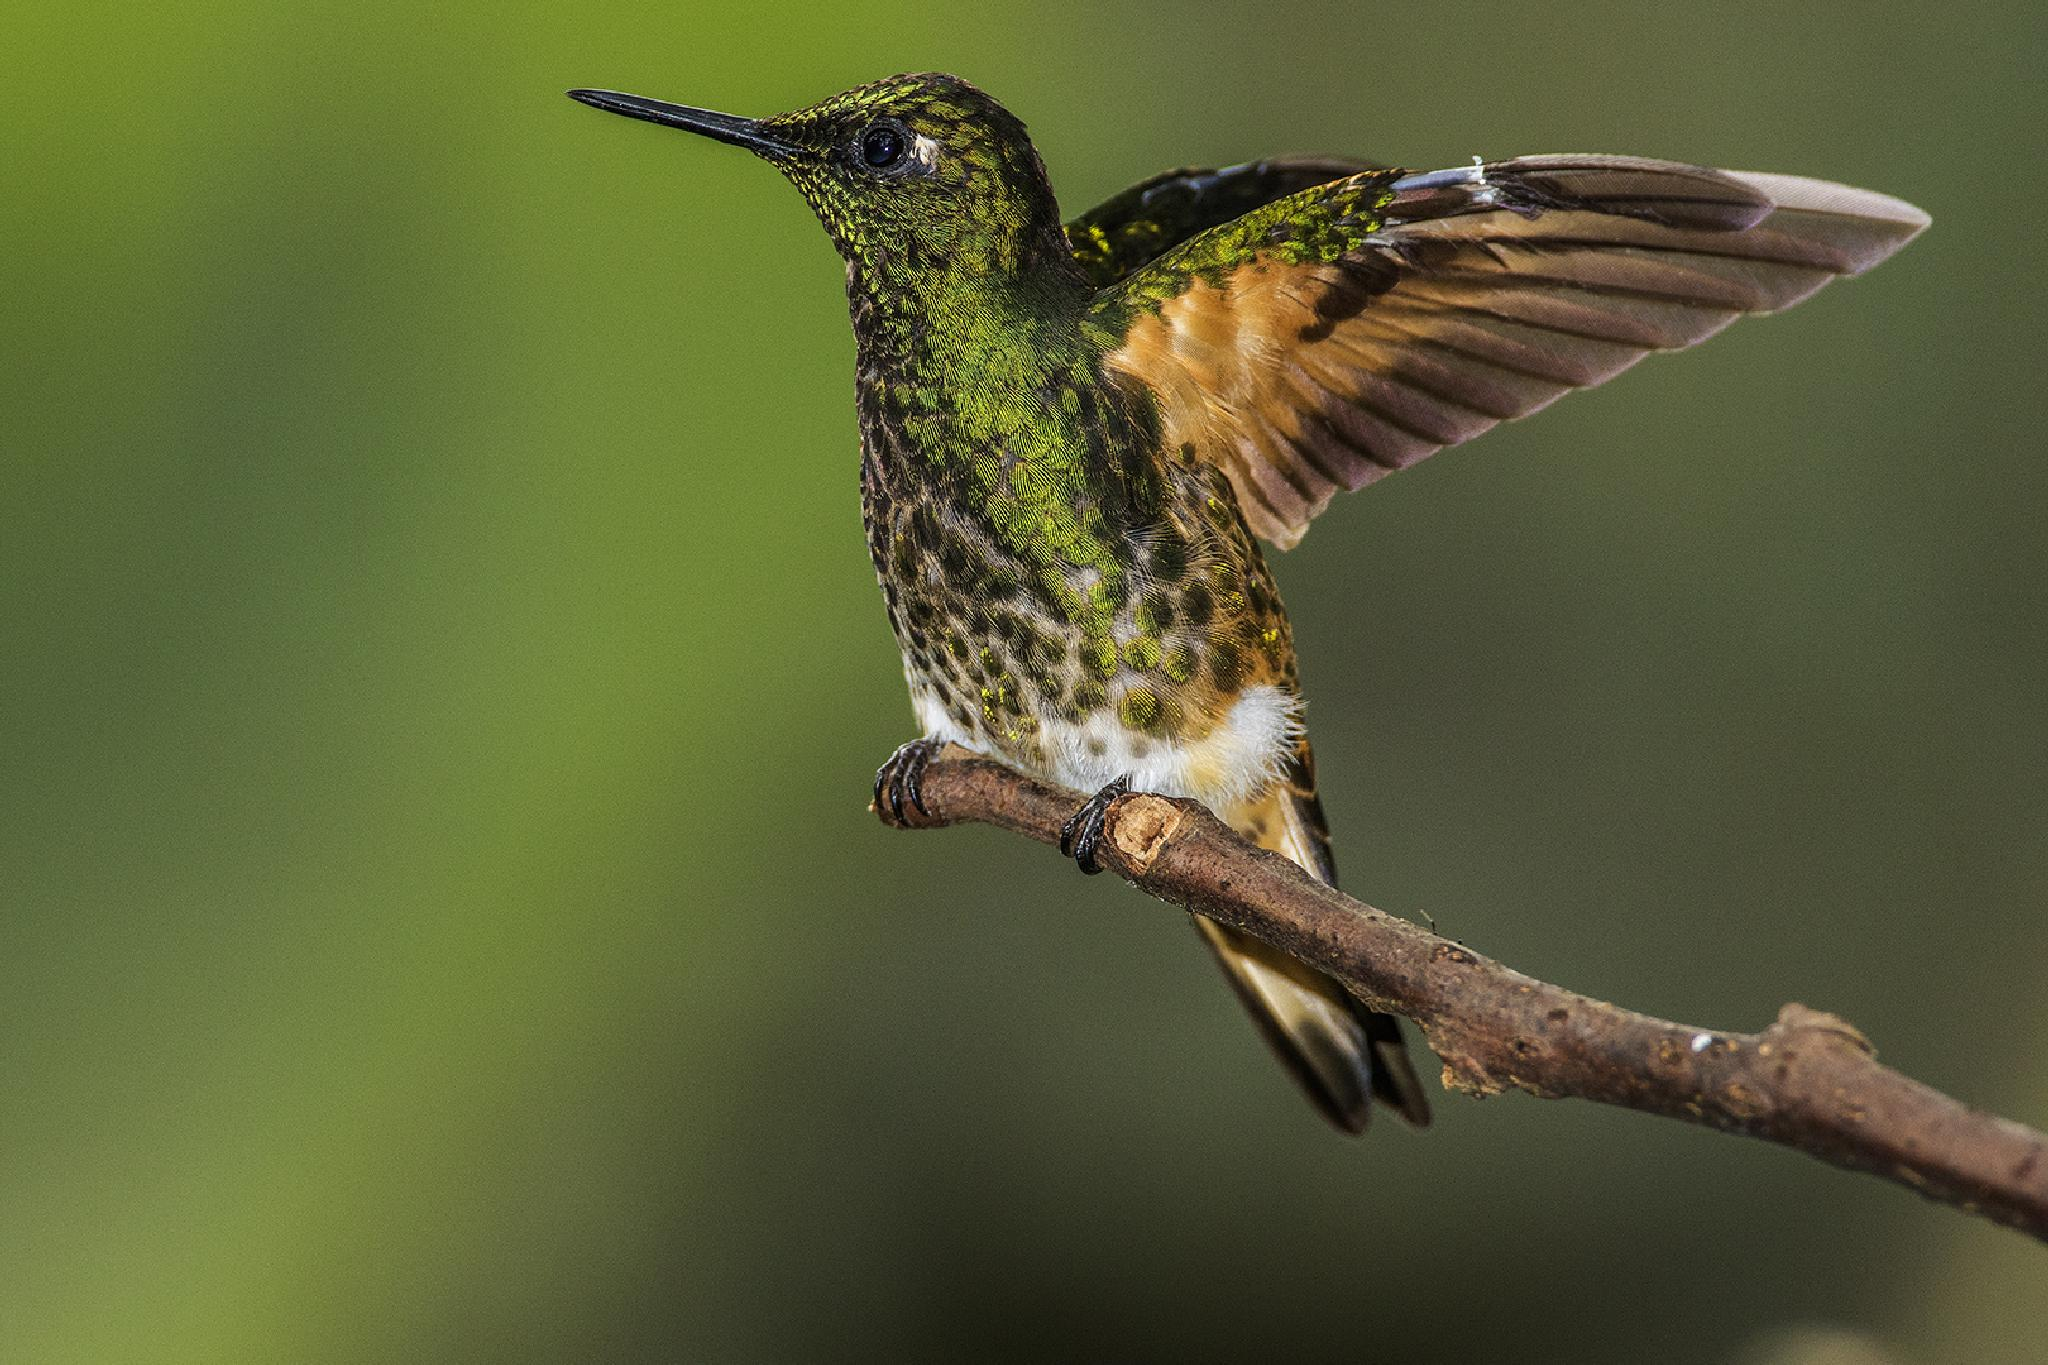 Buff Tailed Coronet by Walter Nussbaumer